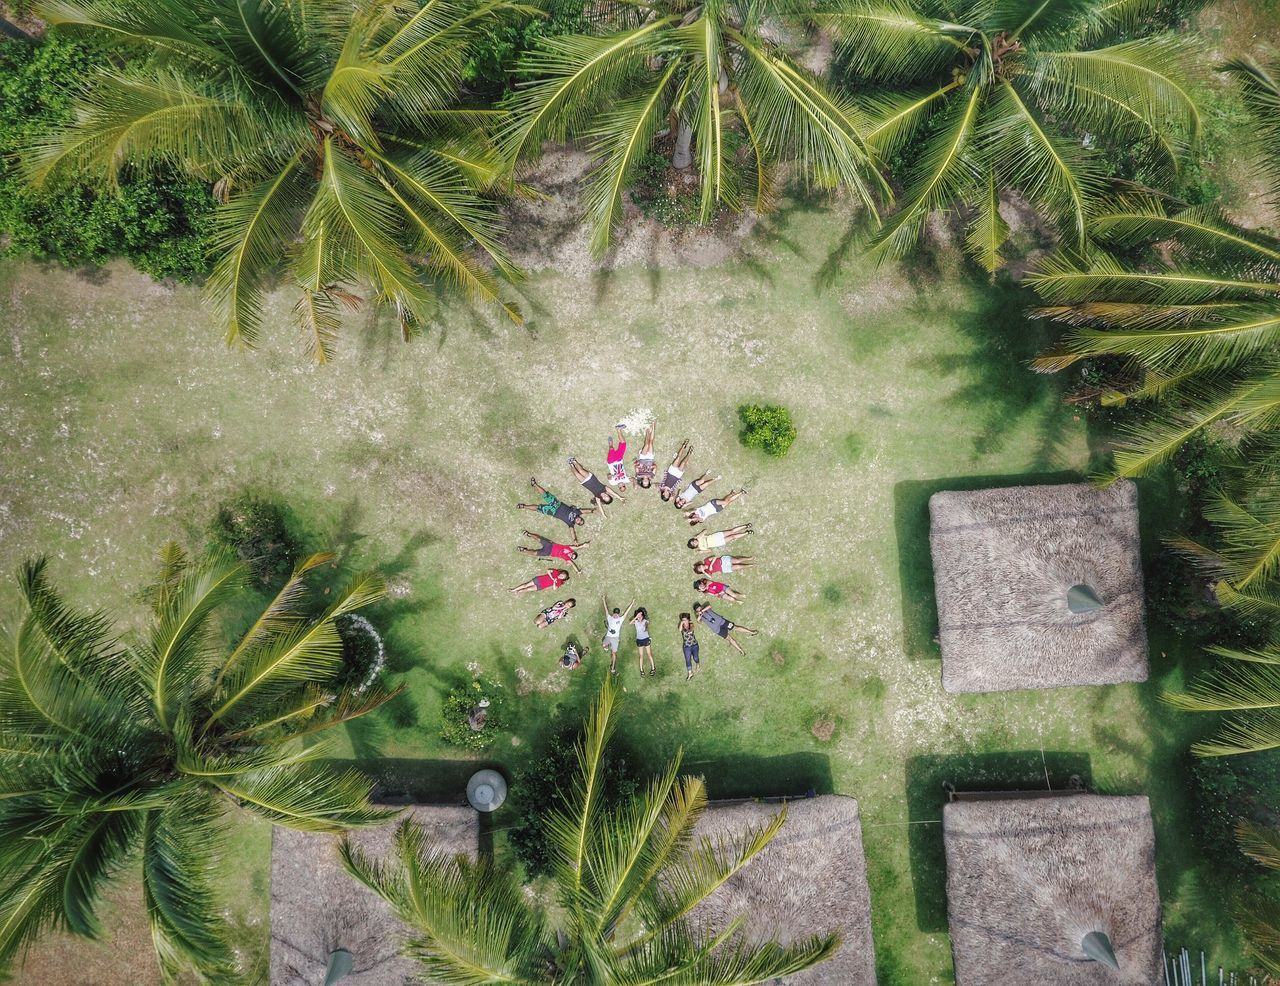 Beautiful stock photos of drones, flower, growth, plant, high angle view